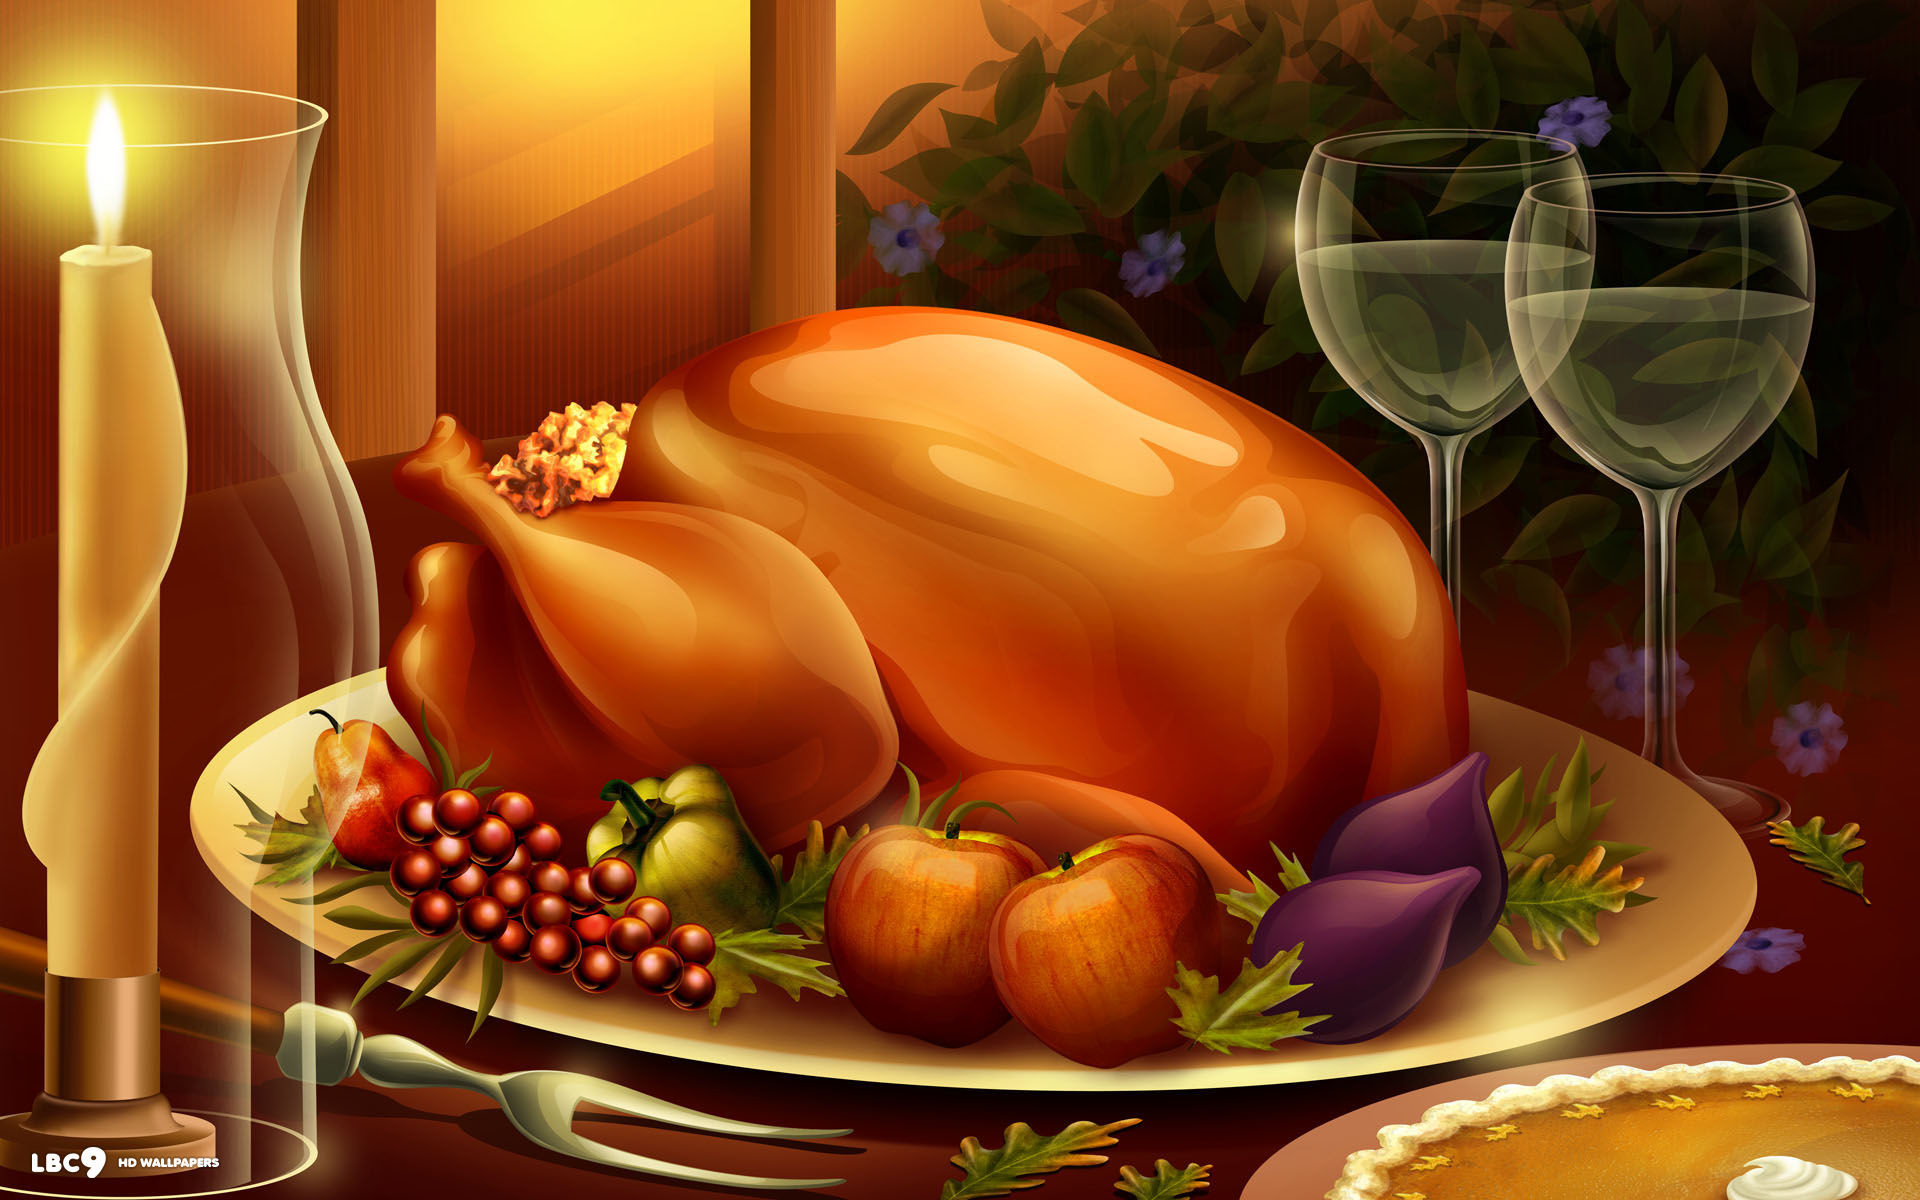 … thanksgiving dinner meal large roasted turkey food candles wine pie holiday  desktop wallpaper